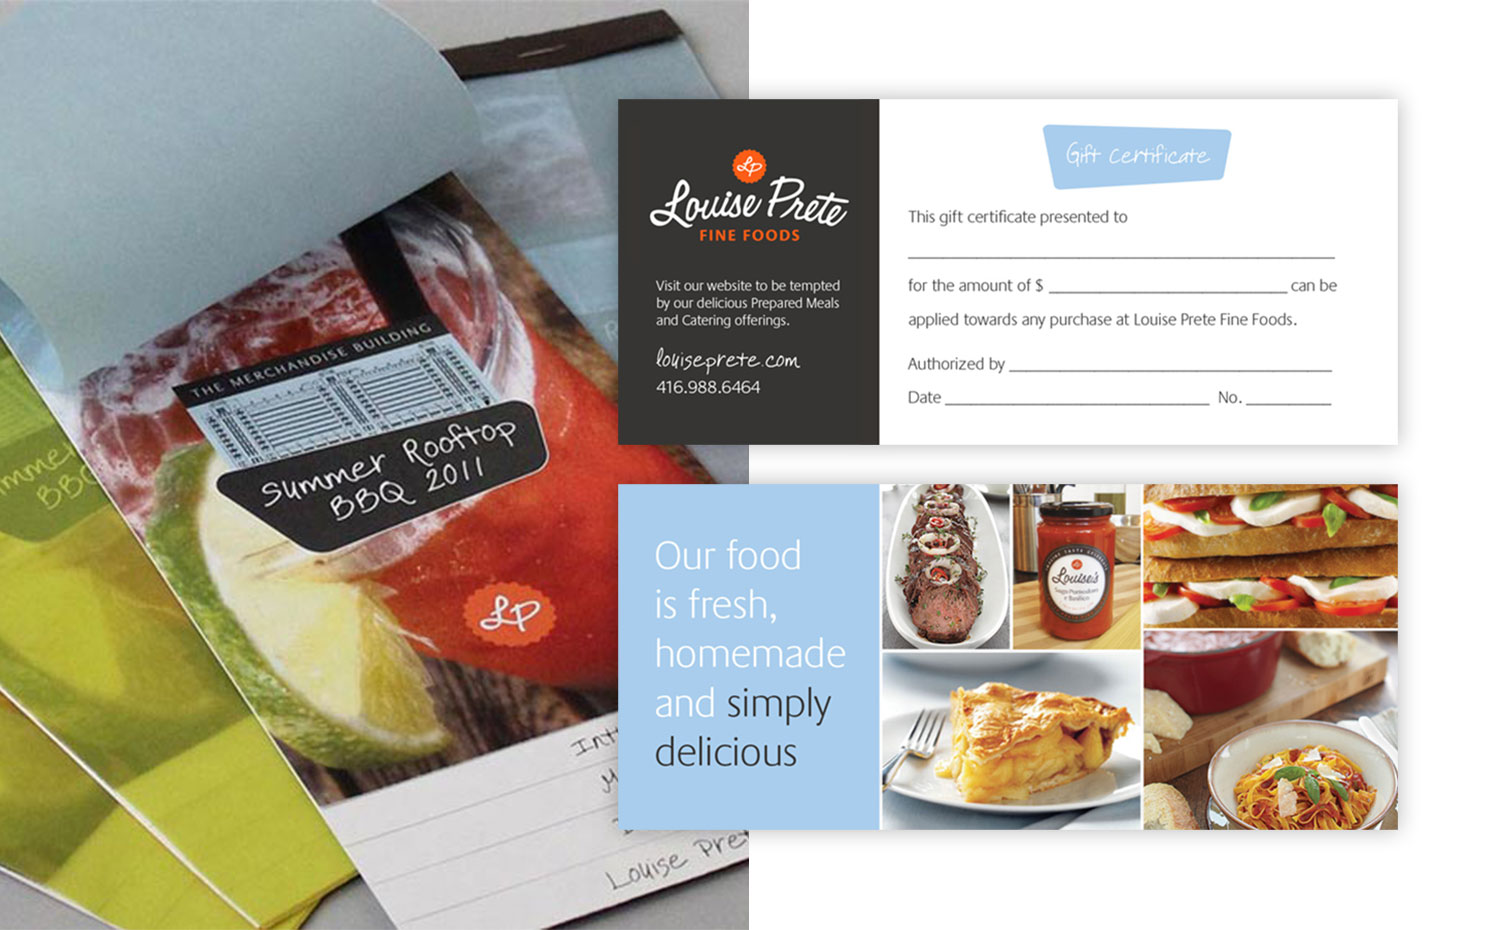 Louise Prete Fine Foods special event and promotional marketing